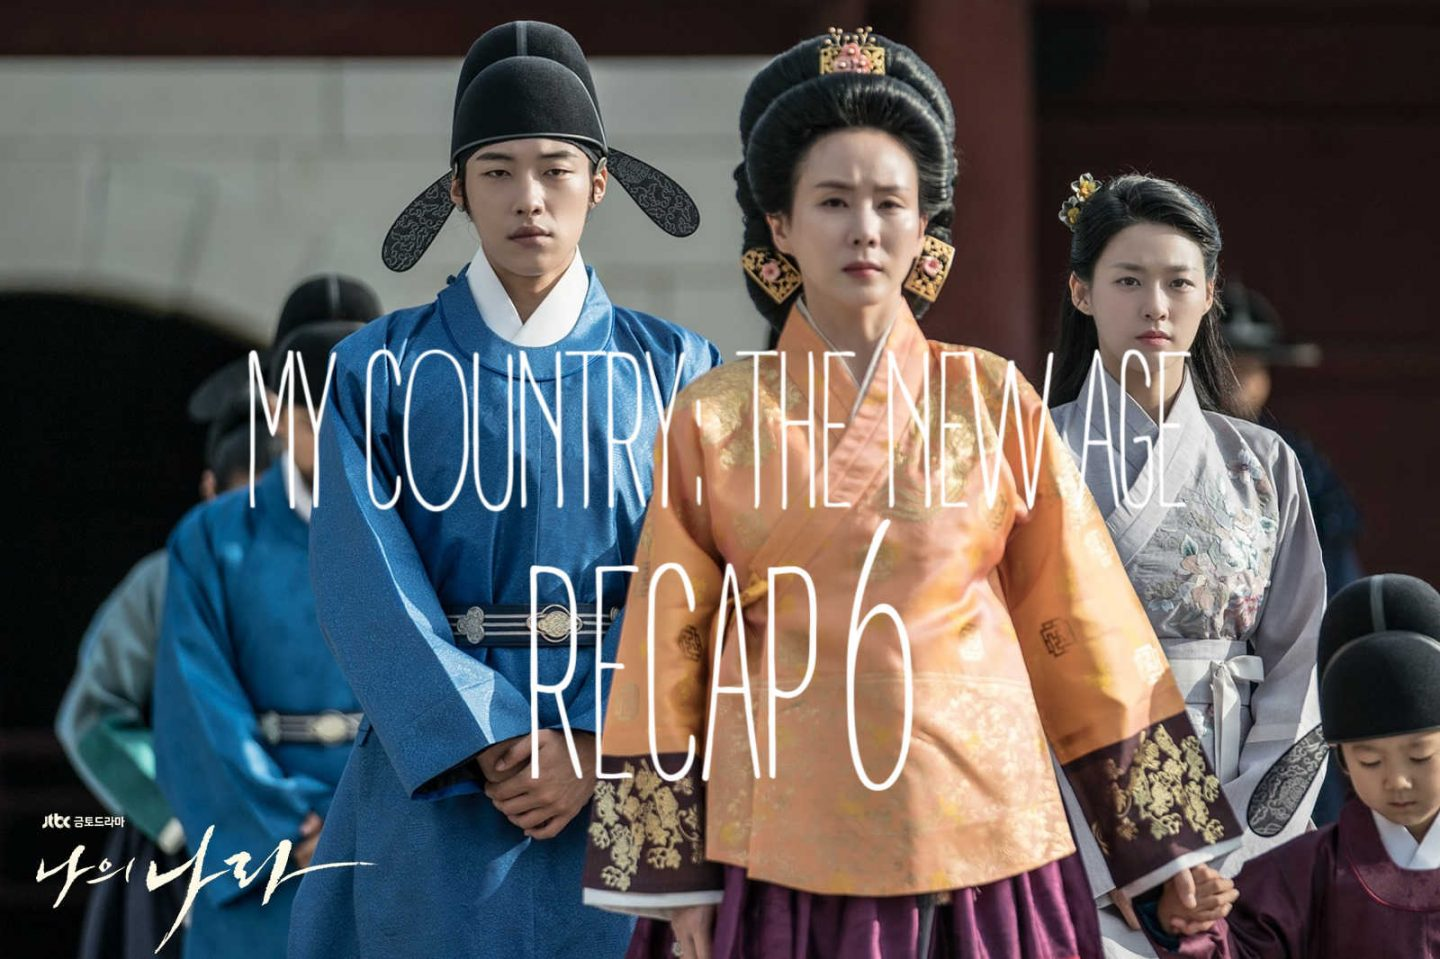 My Country The New Age Recap Episode 6